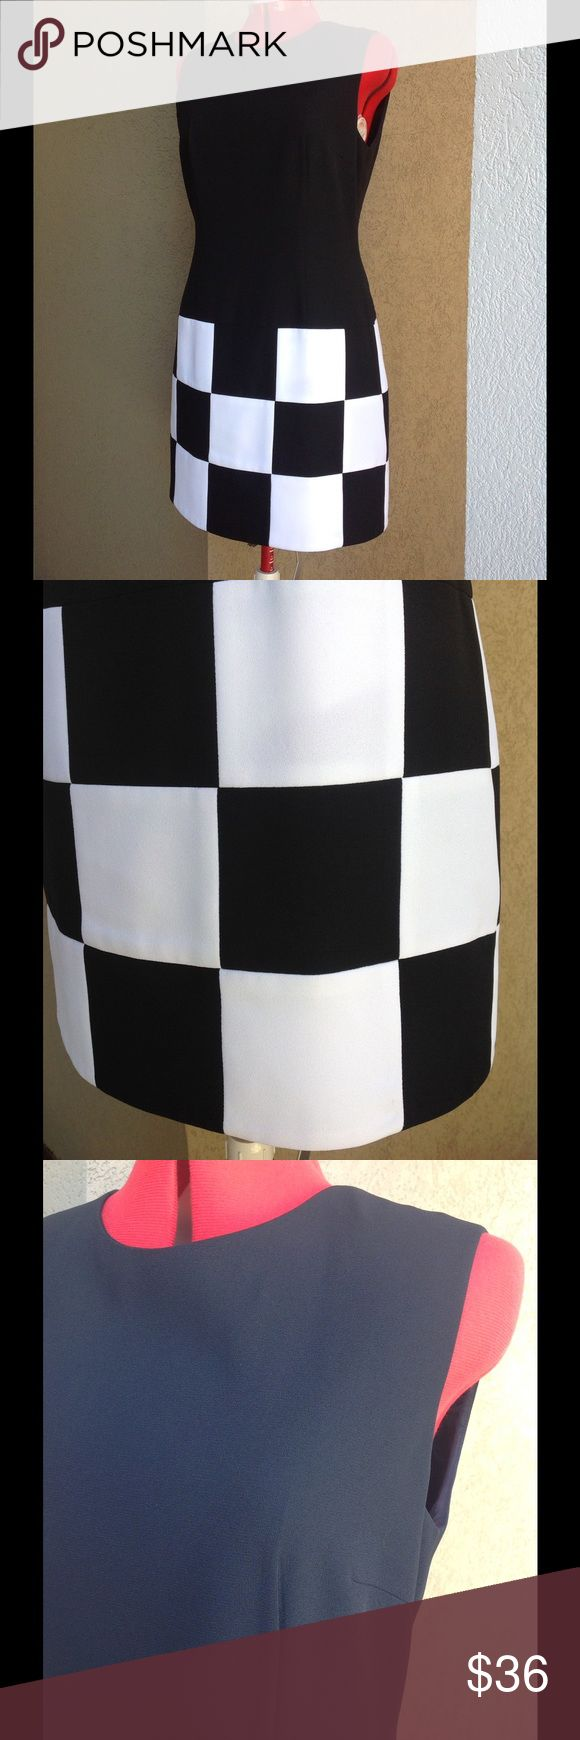 "LAUNDRY SHELLI SEGAL Vintage Checkerboard Dress Mid 90s sleeveless shift Dress, styled like a 60s scooter dress. Gorgeous condition. Black and white. Crepe polyester outer, and acetate lining. Dry cleaned, and no stains to note. A couple of little marks that look like pin pricks near the base of the zipper as shown in closeup photo. Approx meas laid flat: U-U 18.5"" across, W 17"" acr, H 20"" acr, L 34.5"". Vintage Dresses"